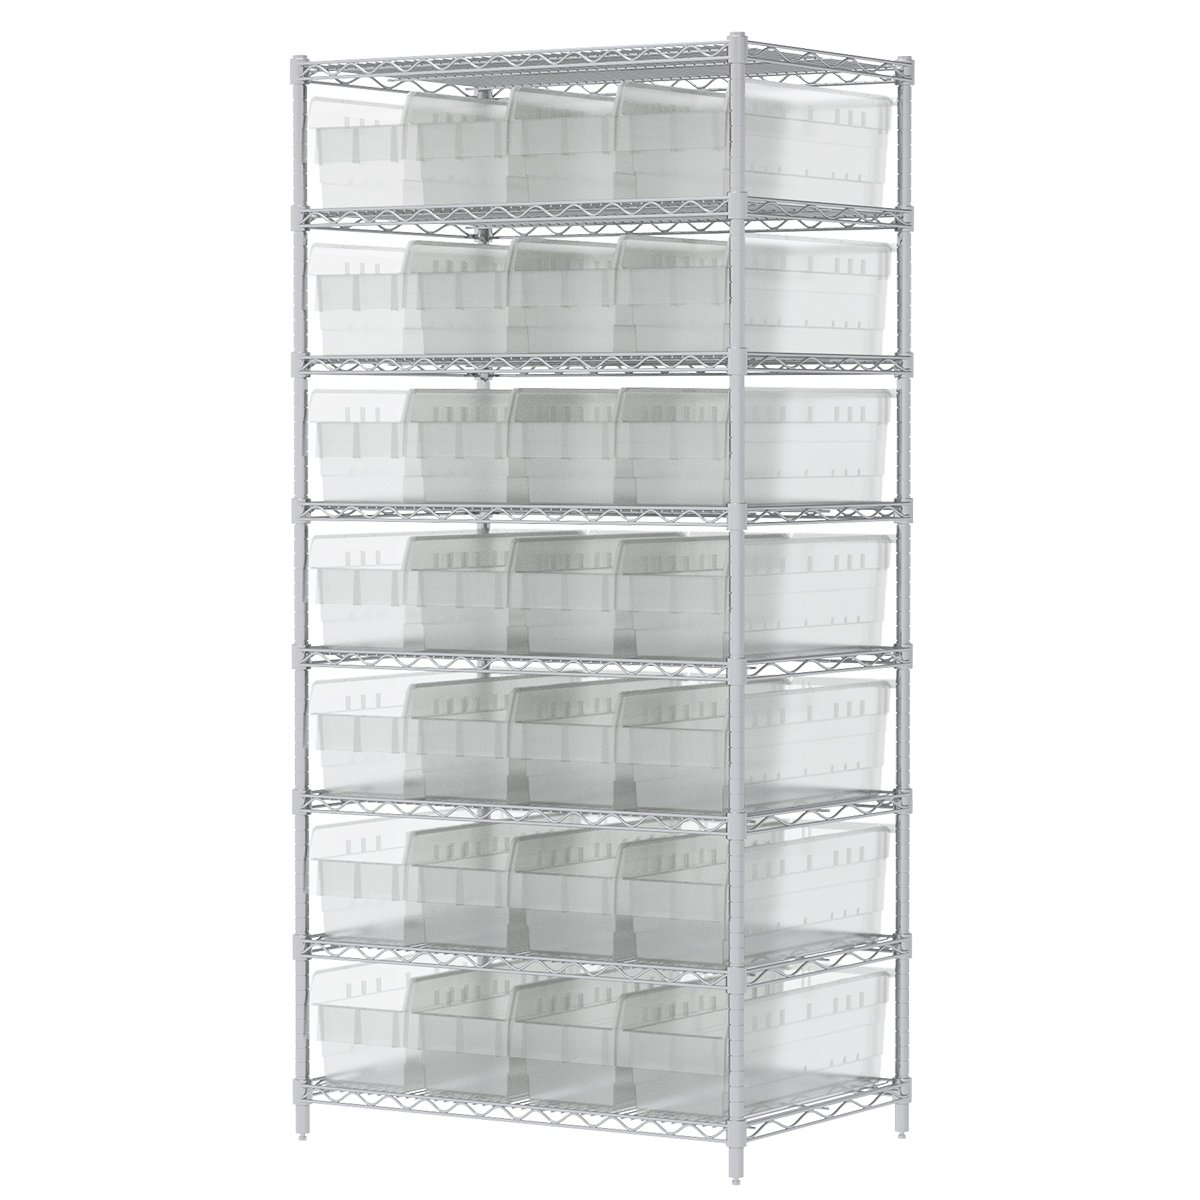 Akro-Mils AWS243630884SC Wire Shelving Kit with 32 Bins, 24'' x 36'' x 74'', Chrome/Clear